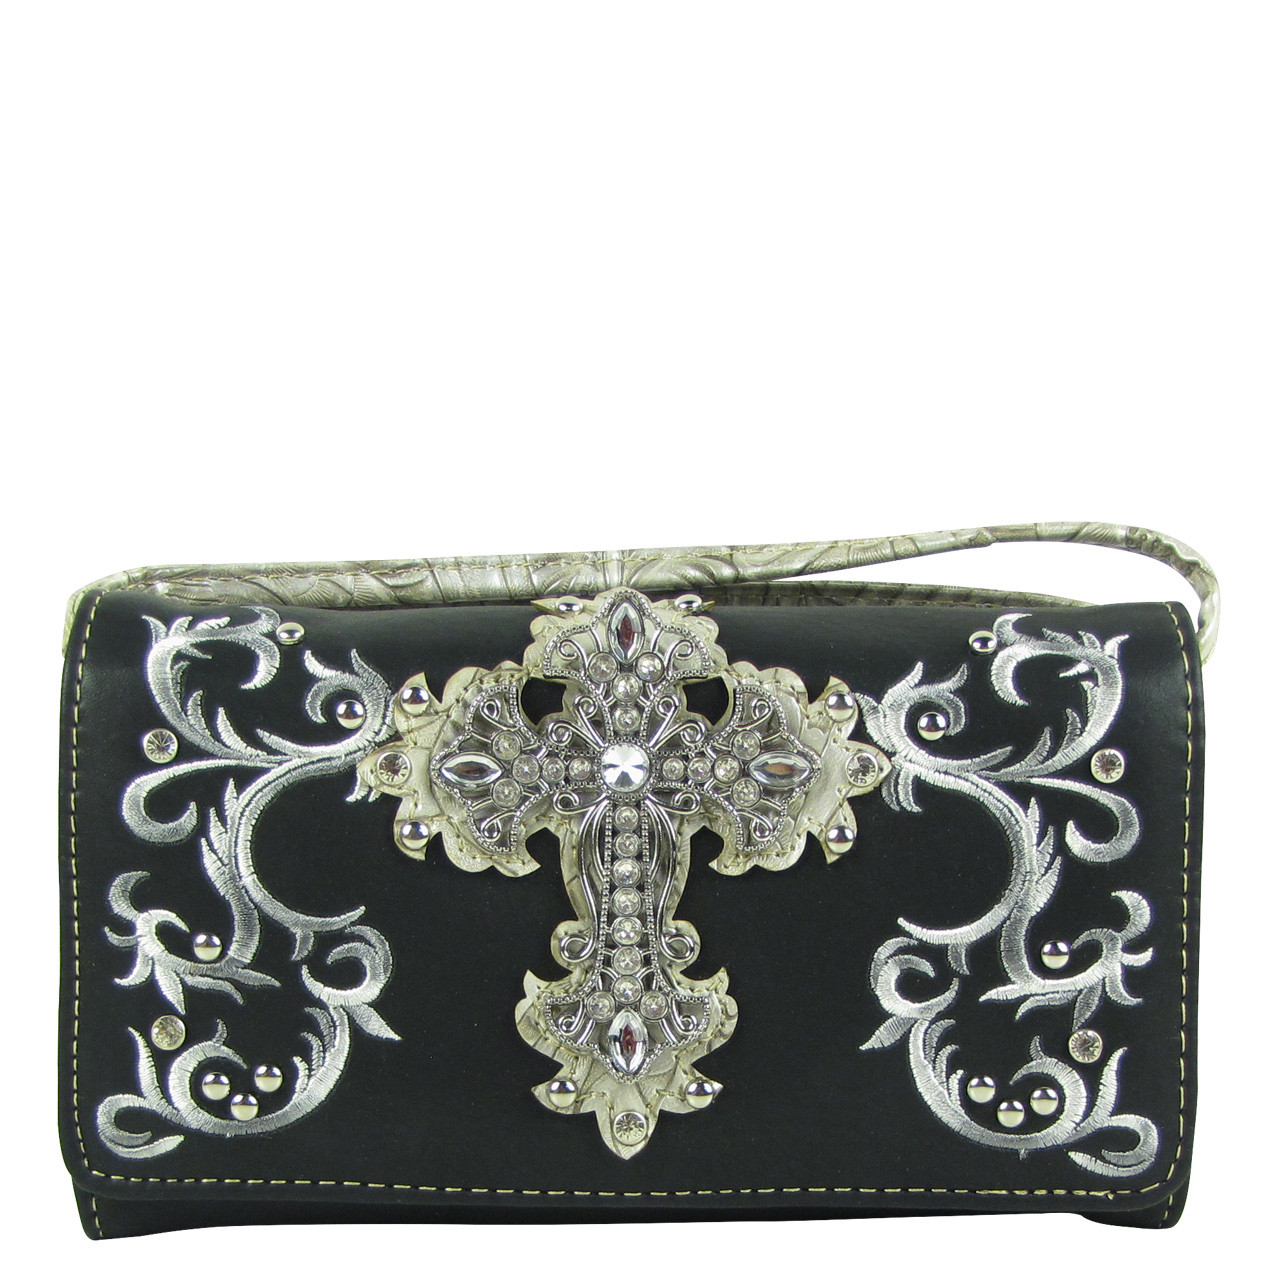 BLACK RHINESTONE CROSS LOOK CLUTCH TRIFOLD WALLET CW1-0472BLK